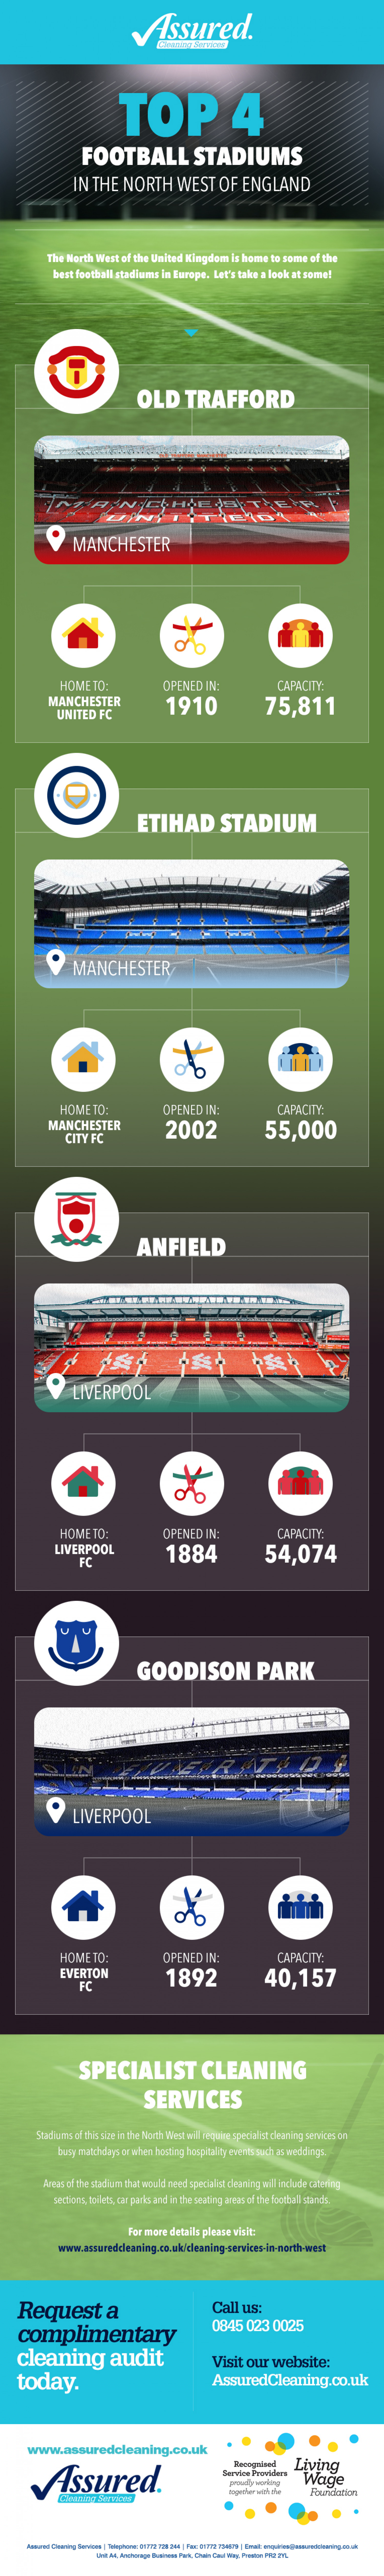 Top 4 Football Stadiums in the North West of England Infographic